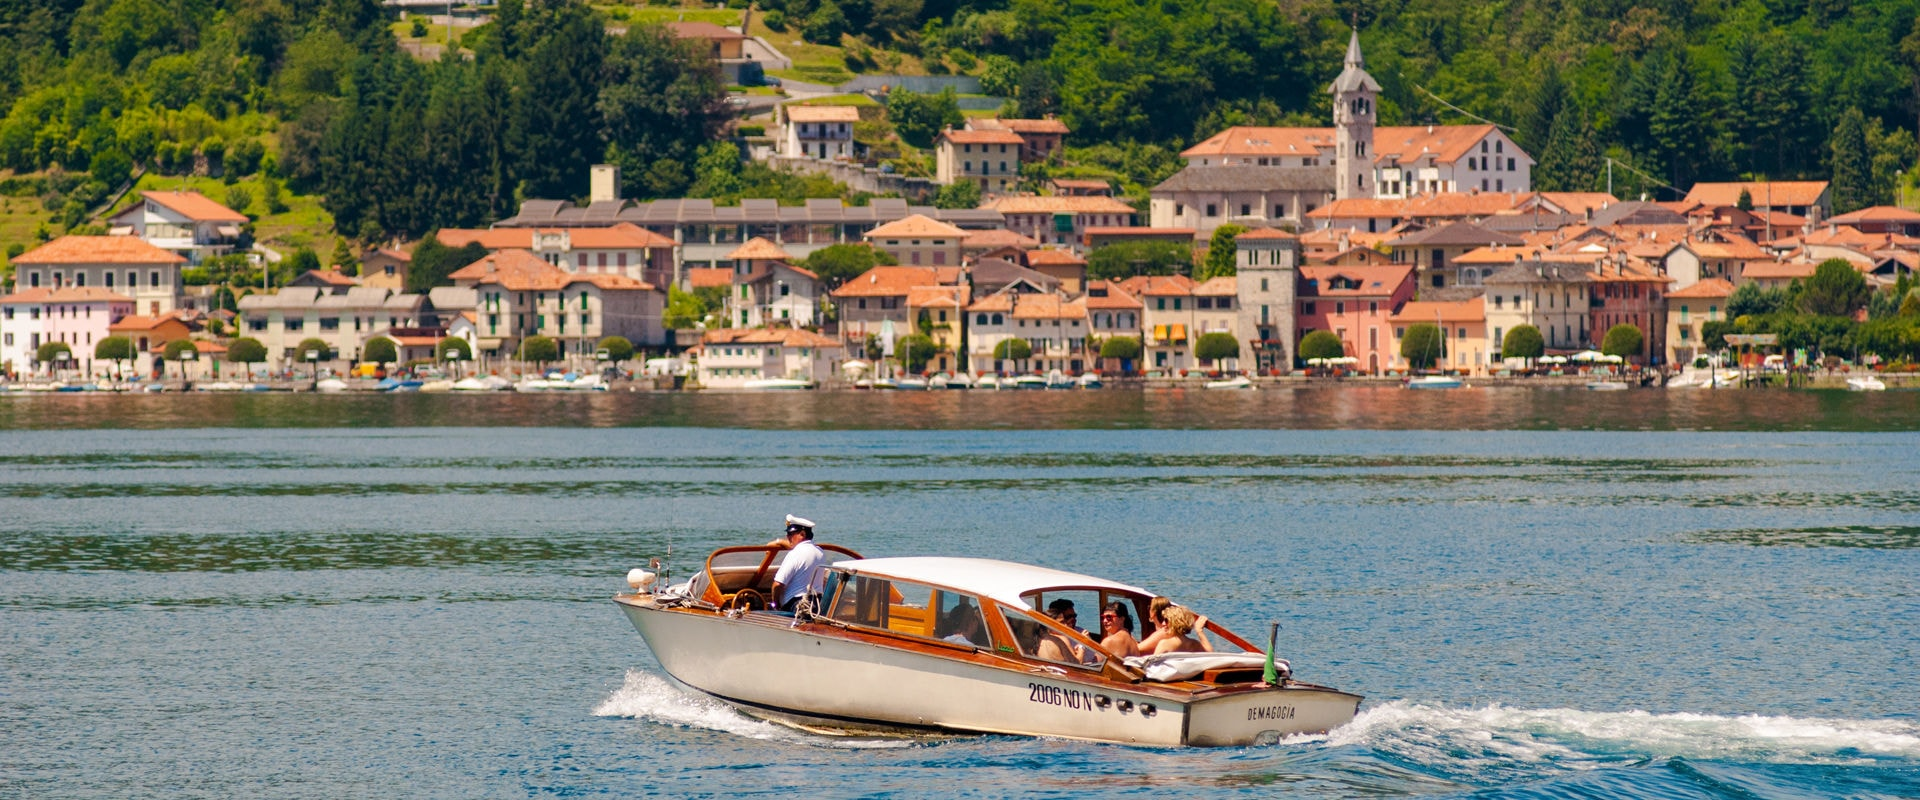 The Grantourismo Travel Guide to the Italian Lakes, Italy. Copyright © 2017 Terence Carter / Grantourismo. All Rights Reserved.